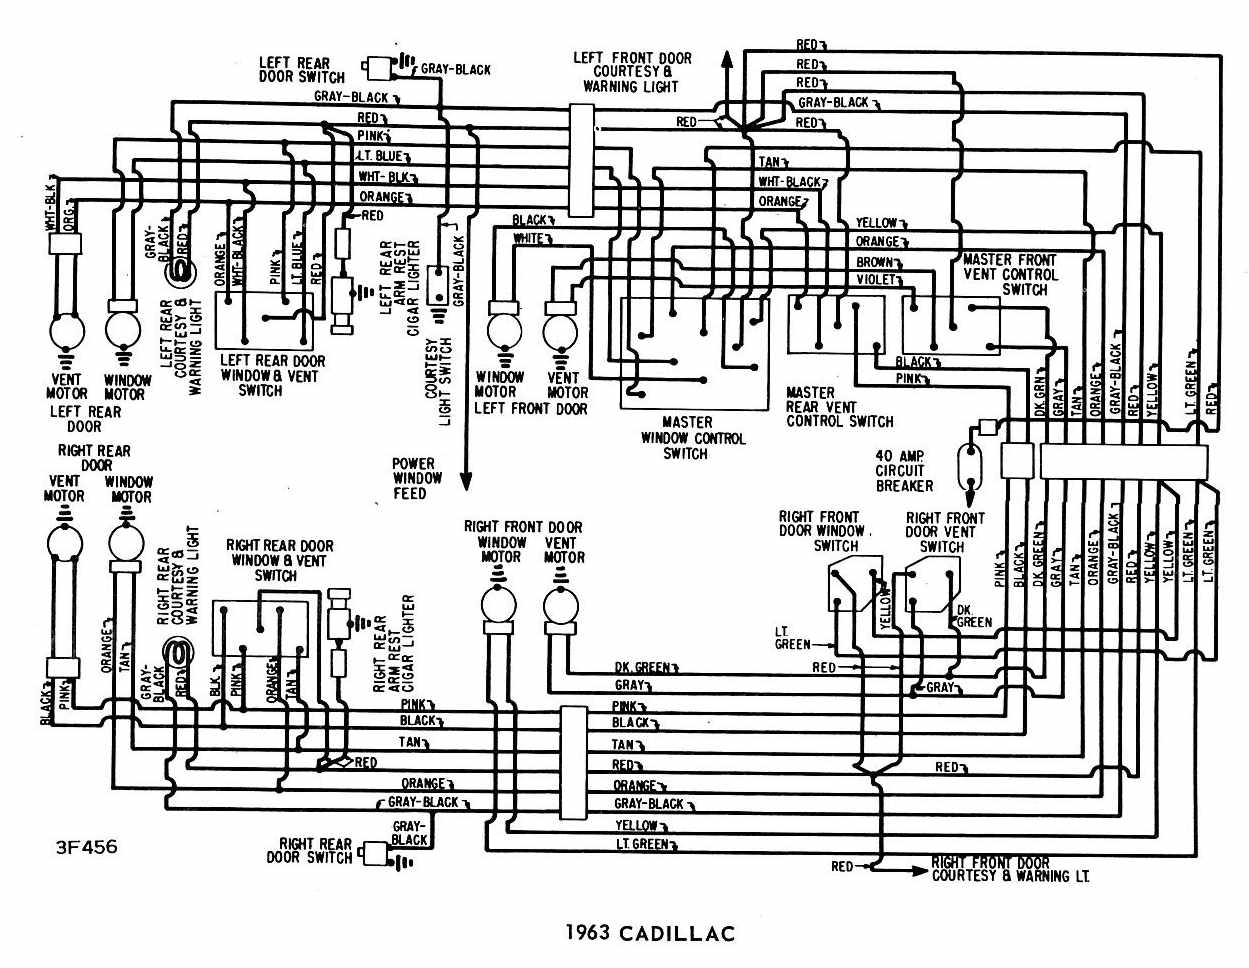 Car Wiring Diagram Software Ryobi Ss30 Parts Cadillac 1963 Windows All About